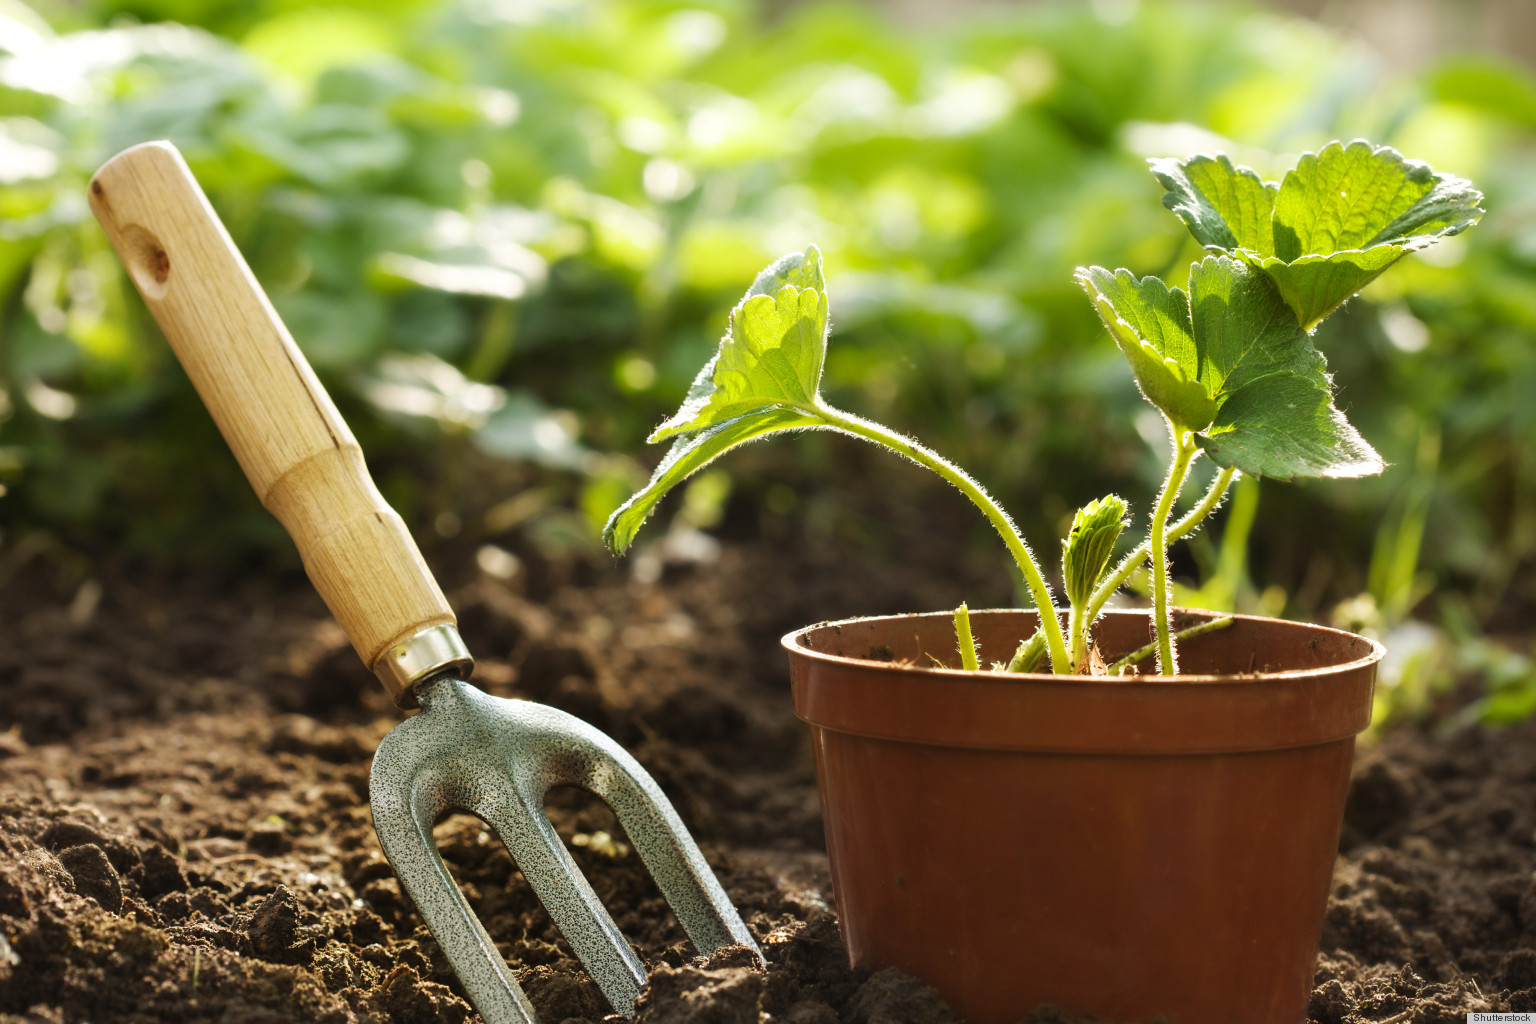 10 Different Ways You Can Use Coffee Grounds in Your Home, From Fertilizing Your Garden to Deodorizing Your Fridge!5